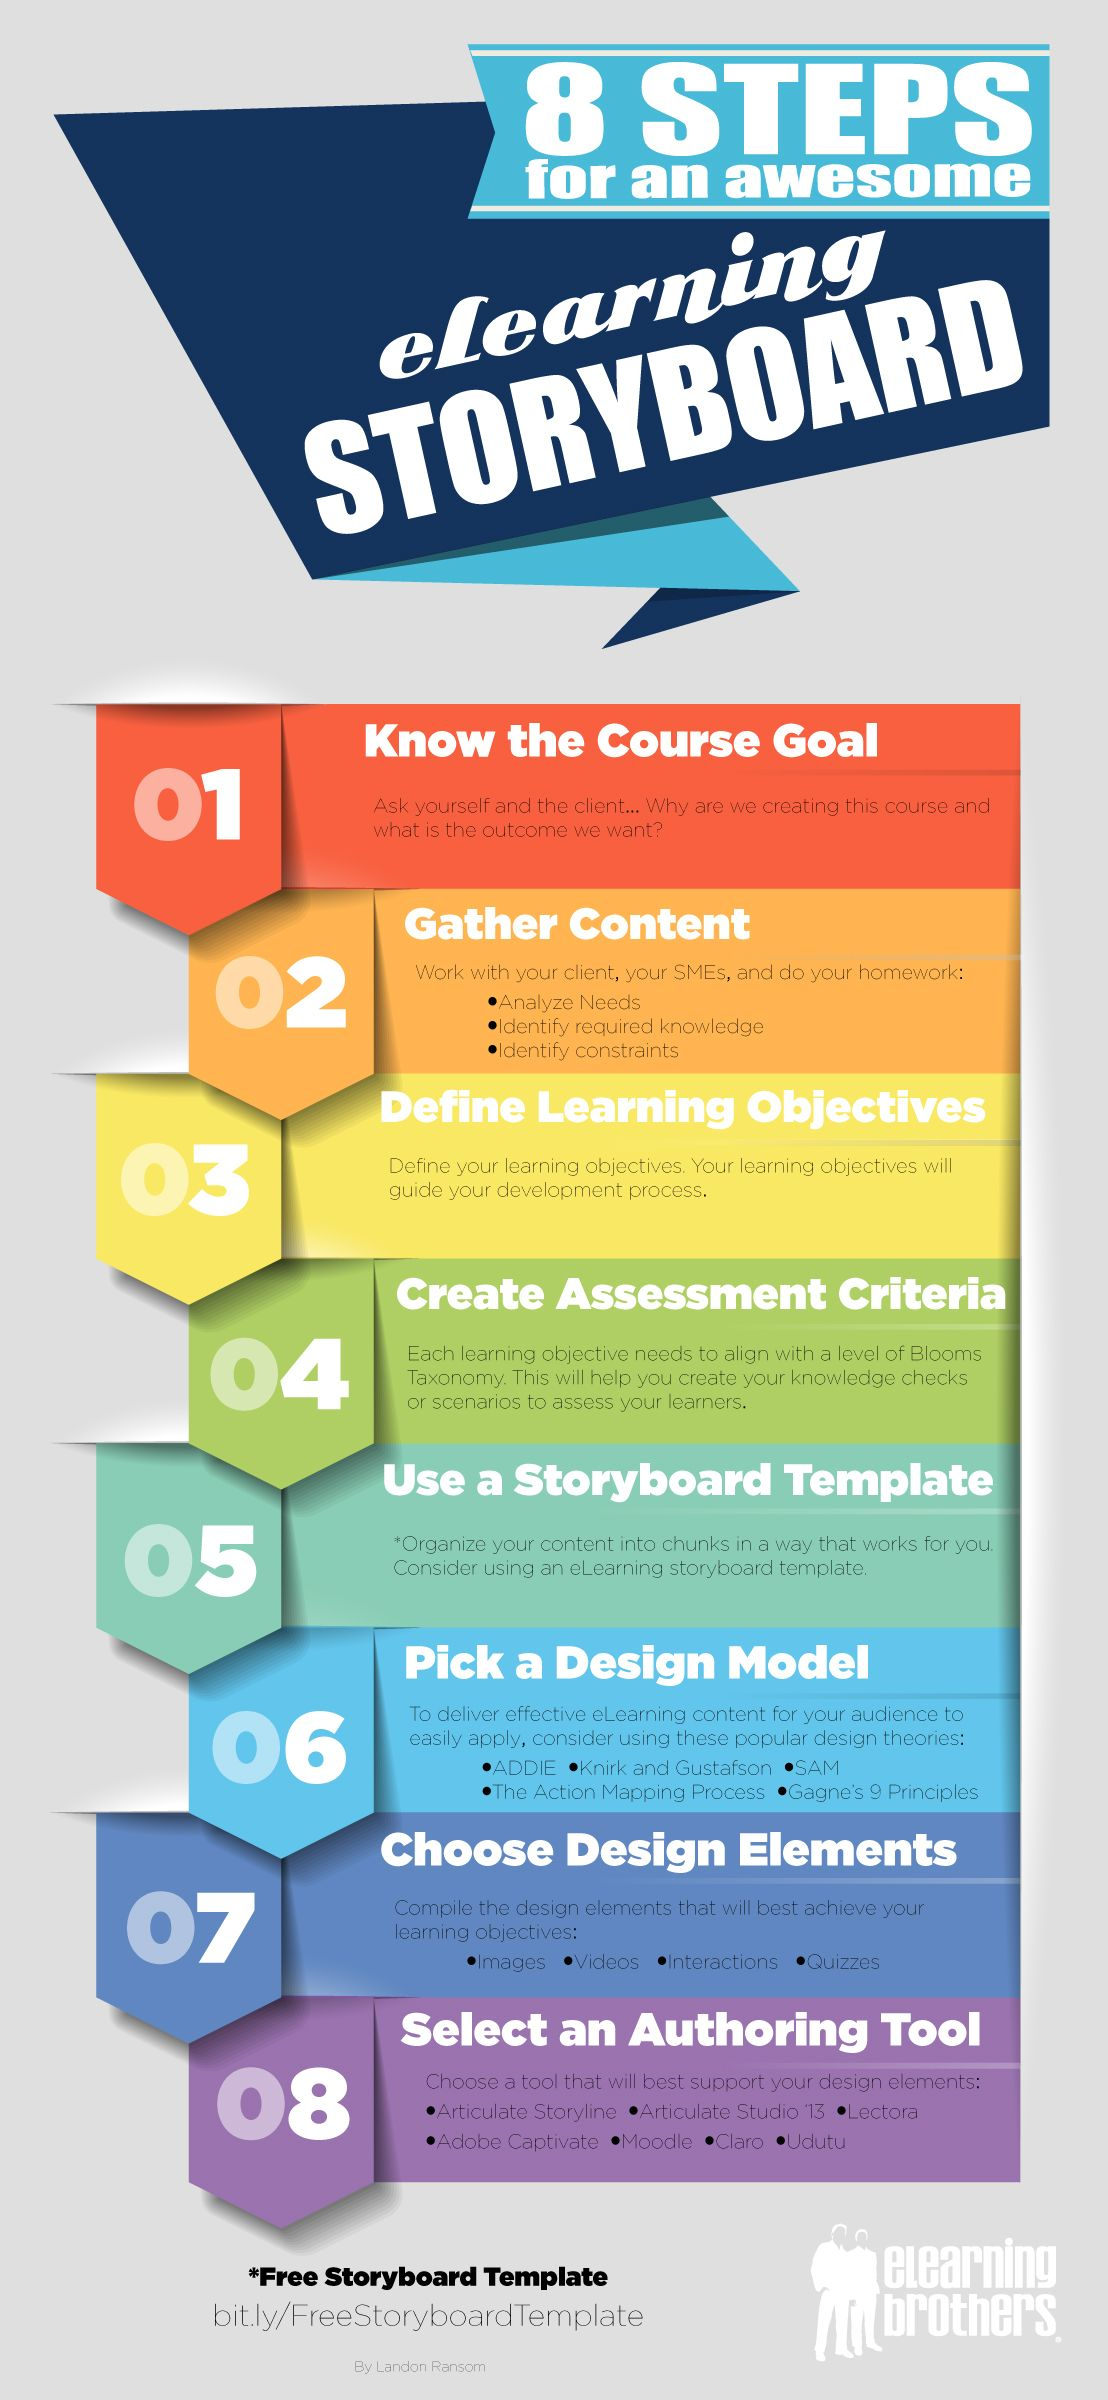 Steps For An Awesome Elearning Storyboard  Storyboard Learning